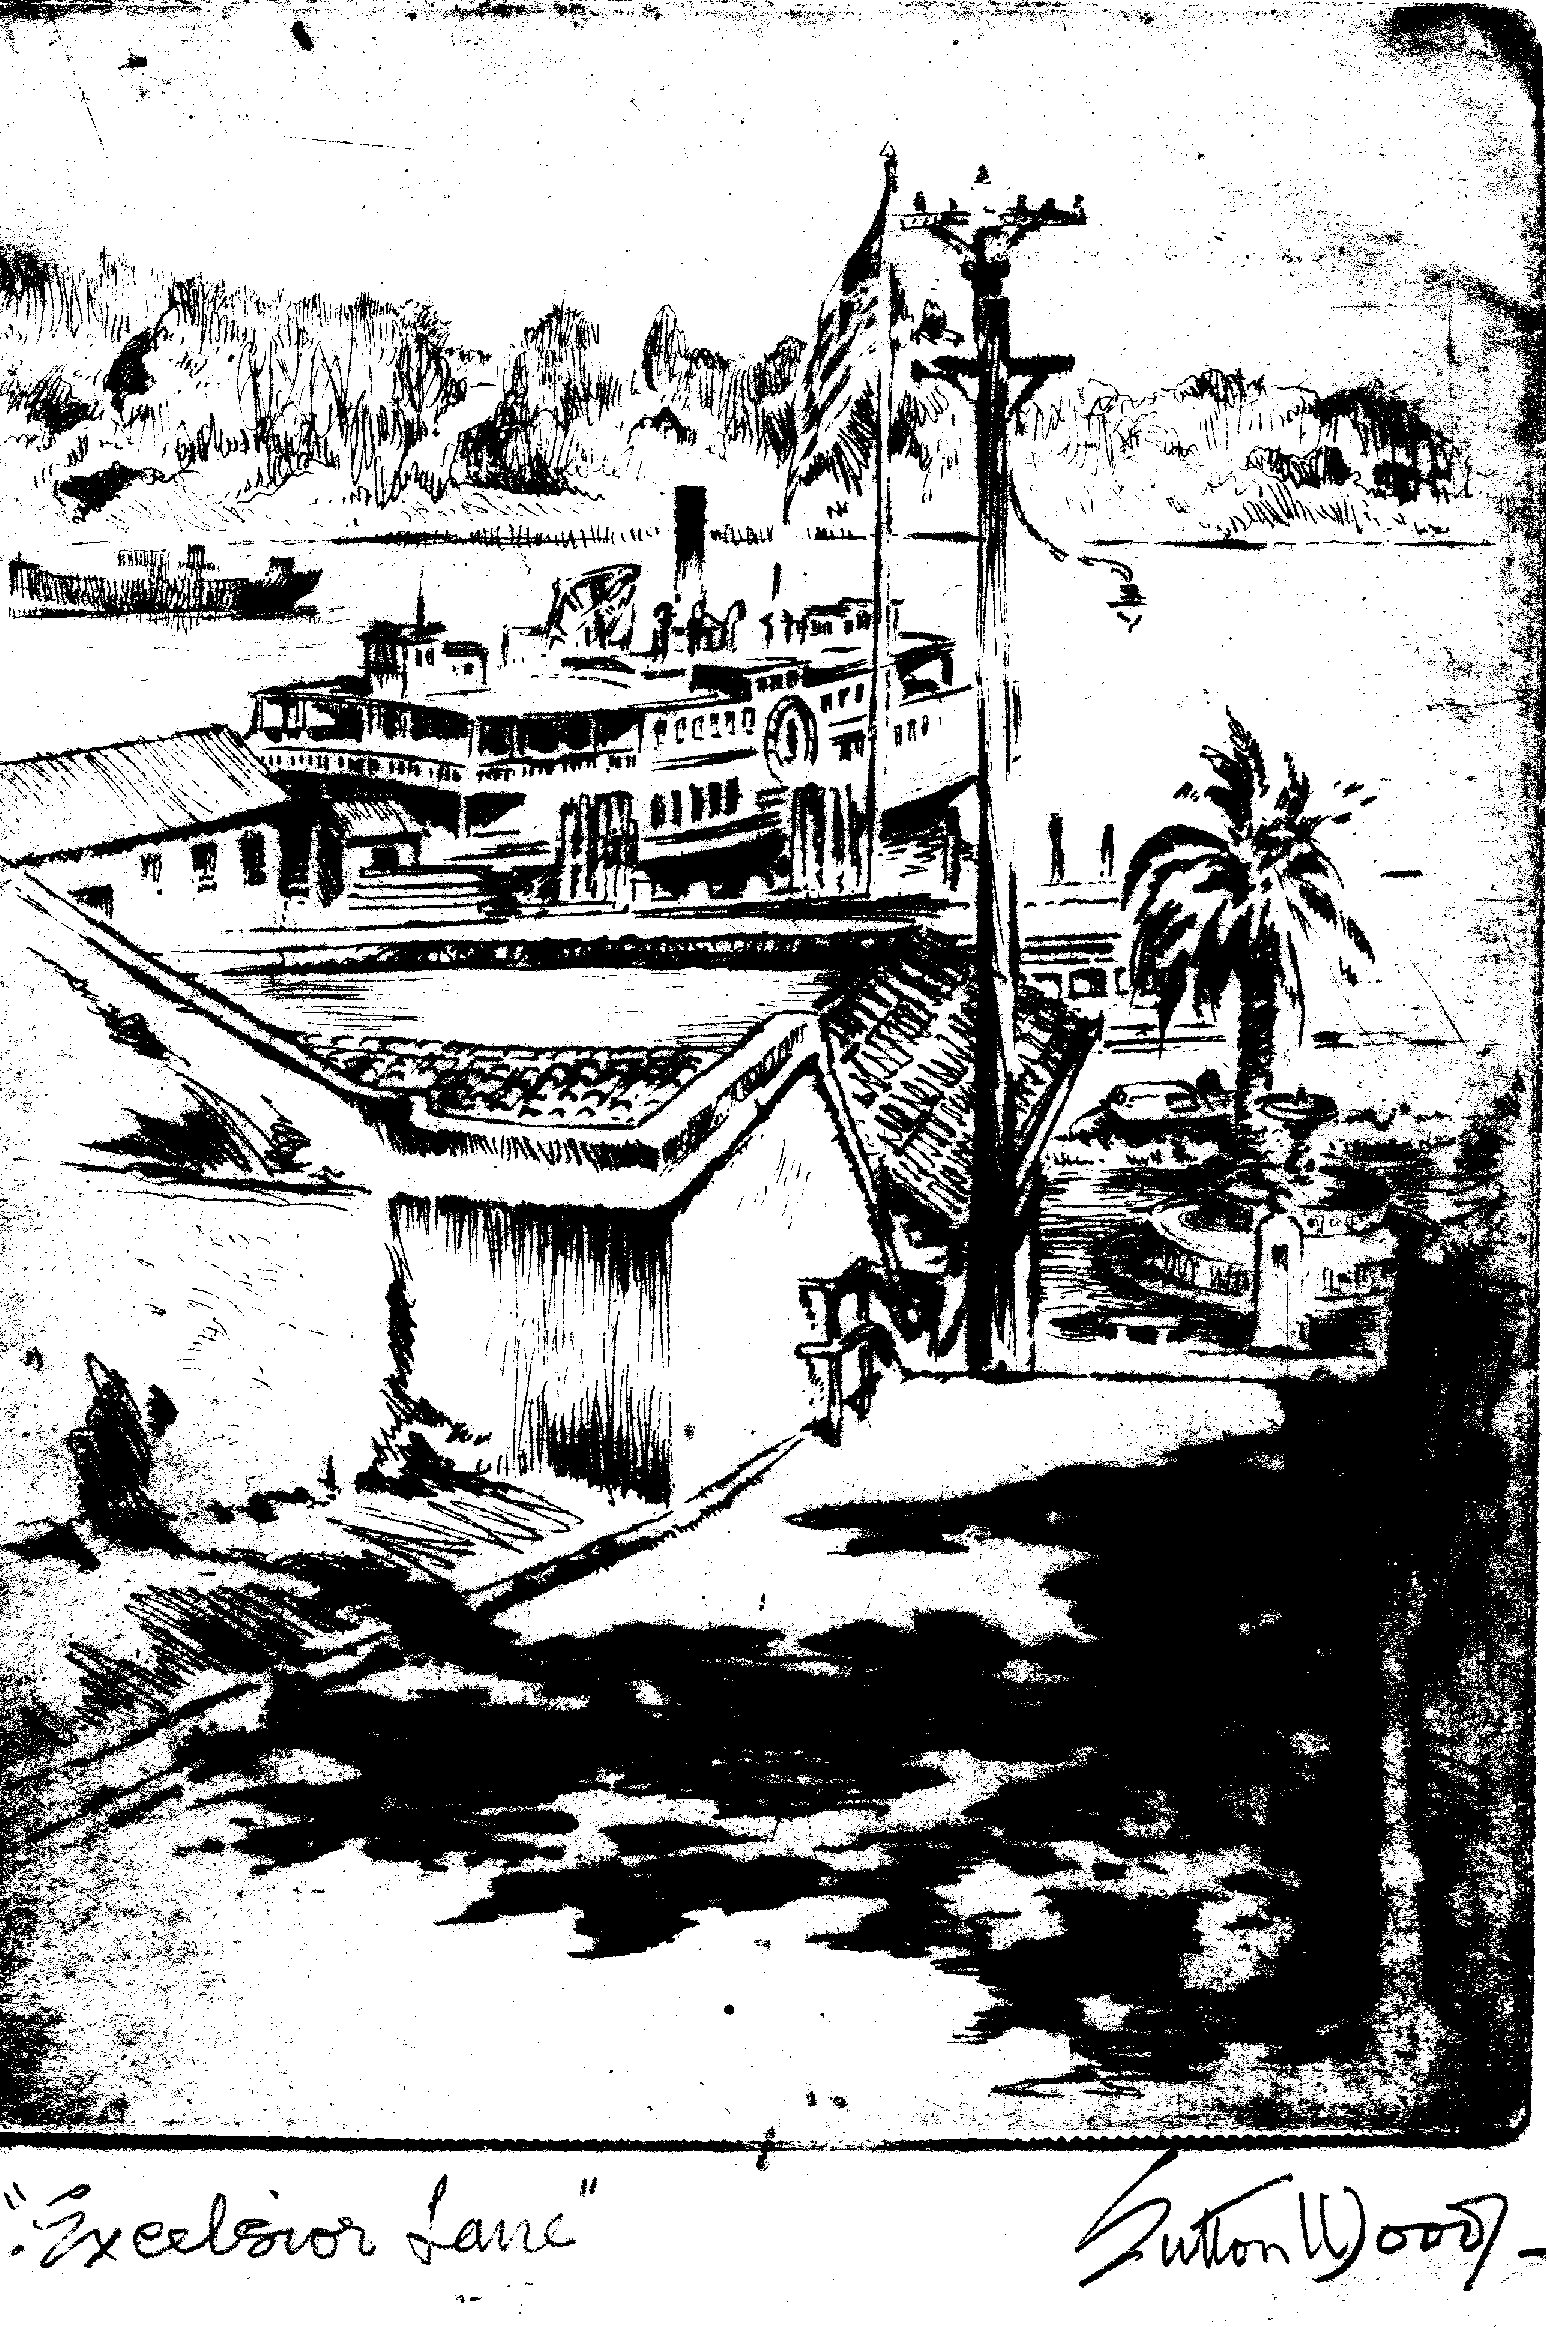 Pen-and-ink illustration of Excelsior Lane by Leonard Sutton Wood, who died in Sausalito in 1970. Courtesy of Sausalito Historical Society